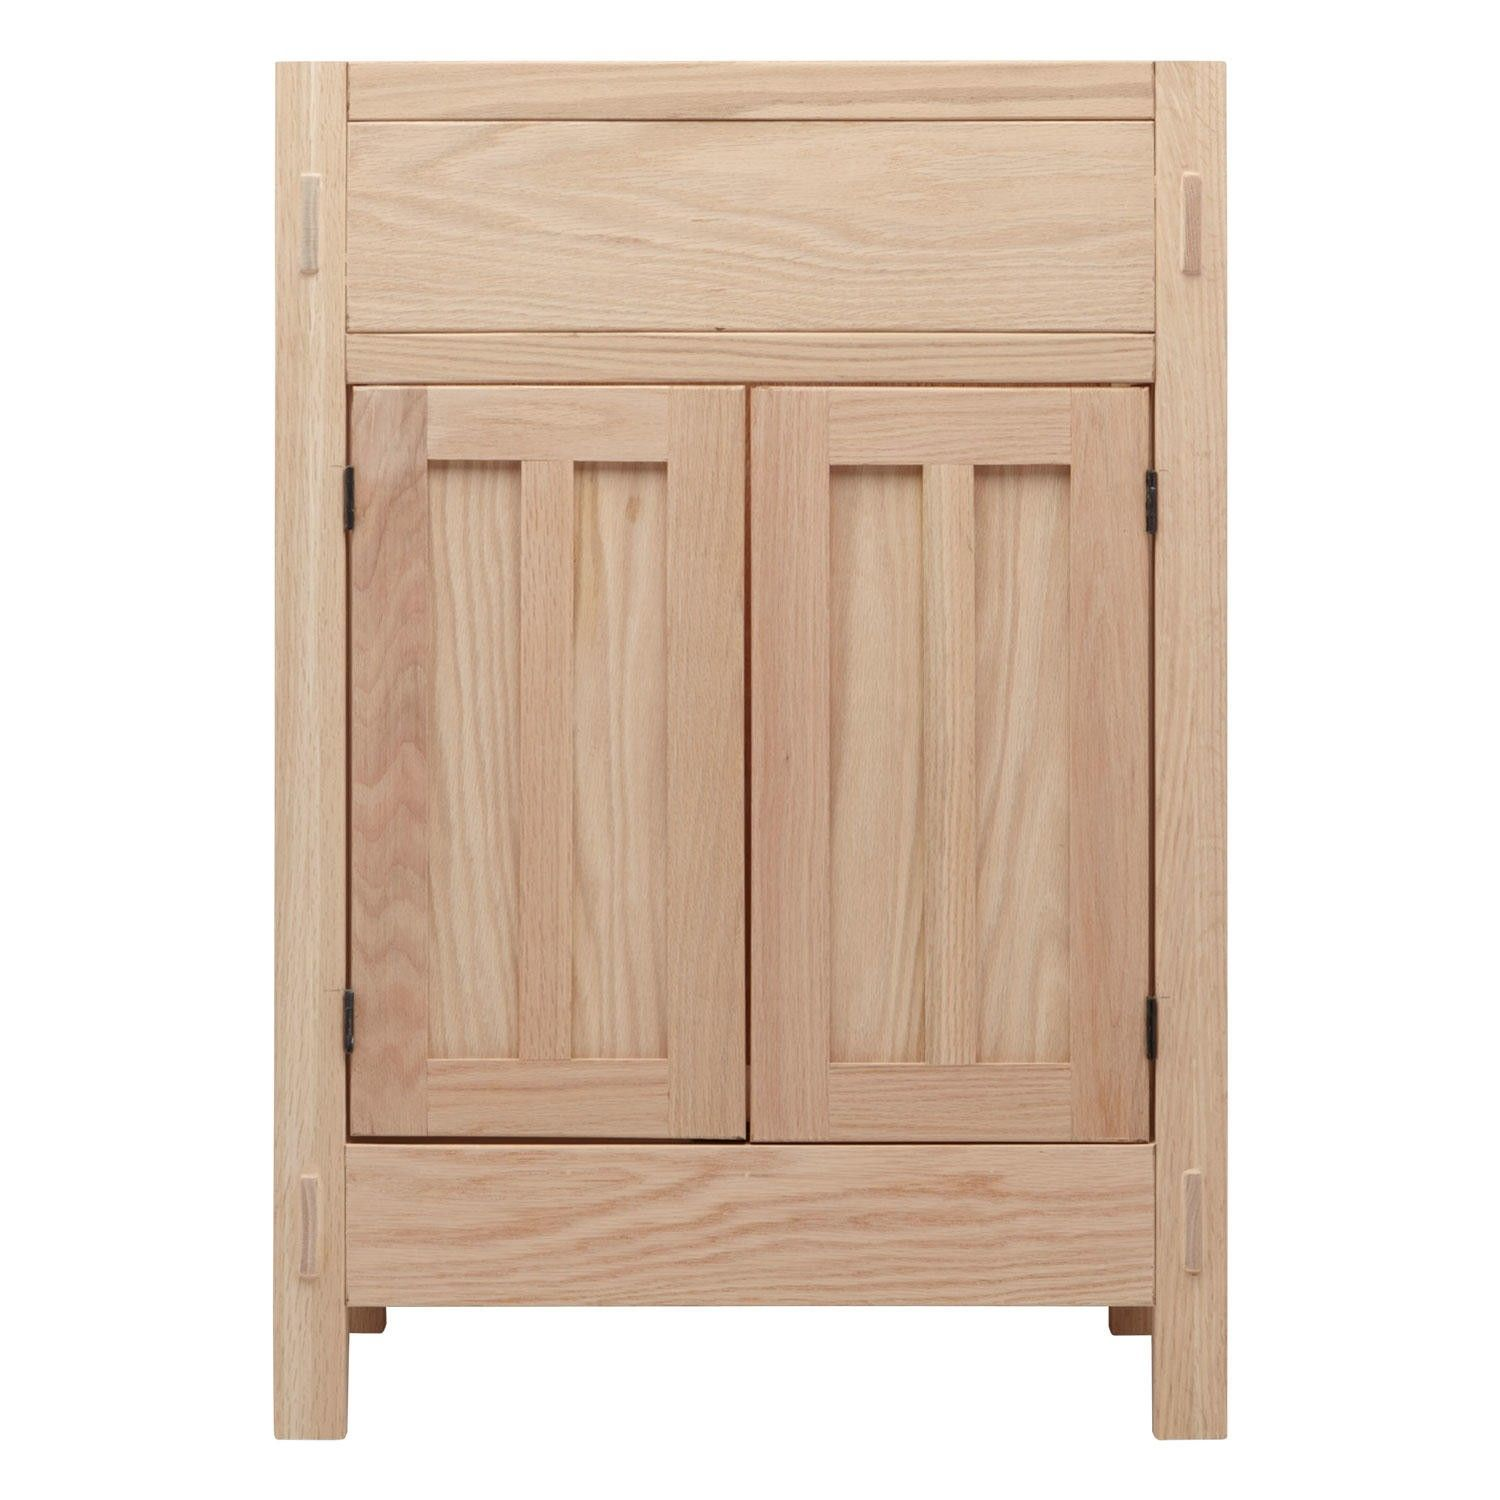 the menards vanity best cabinets kitchen home unfinished depot vanities ideas of wood real bathroom on